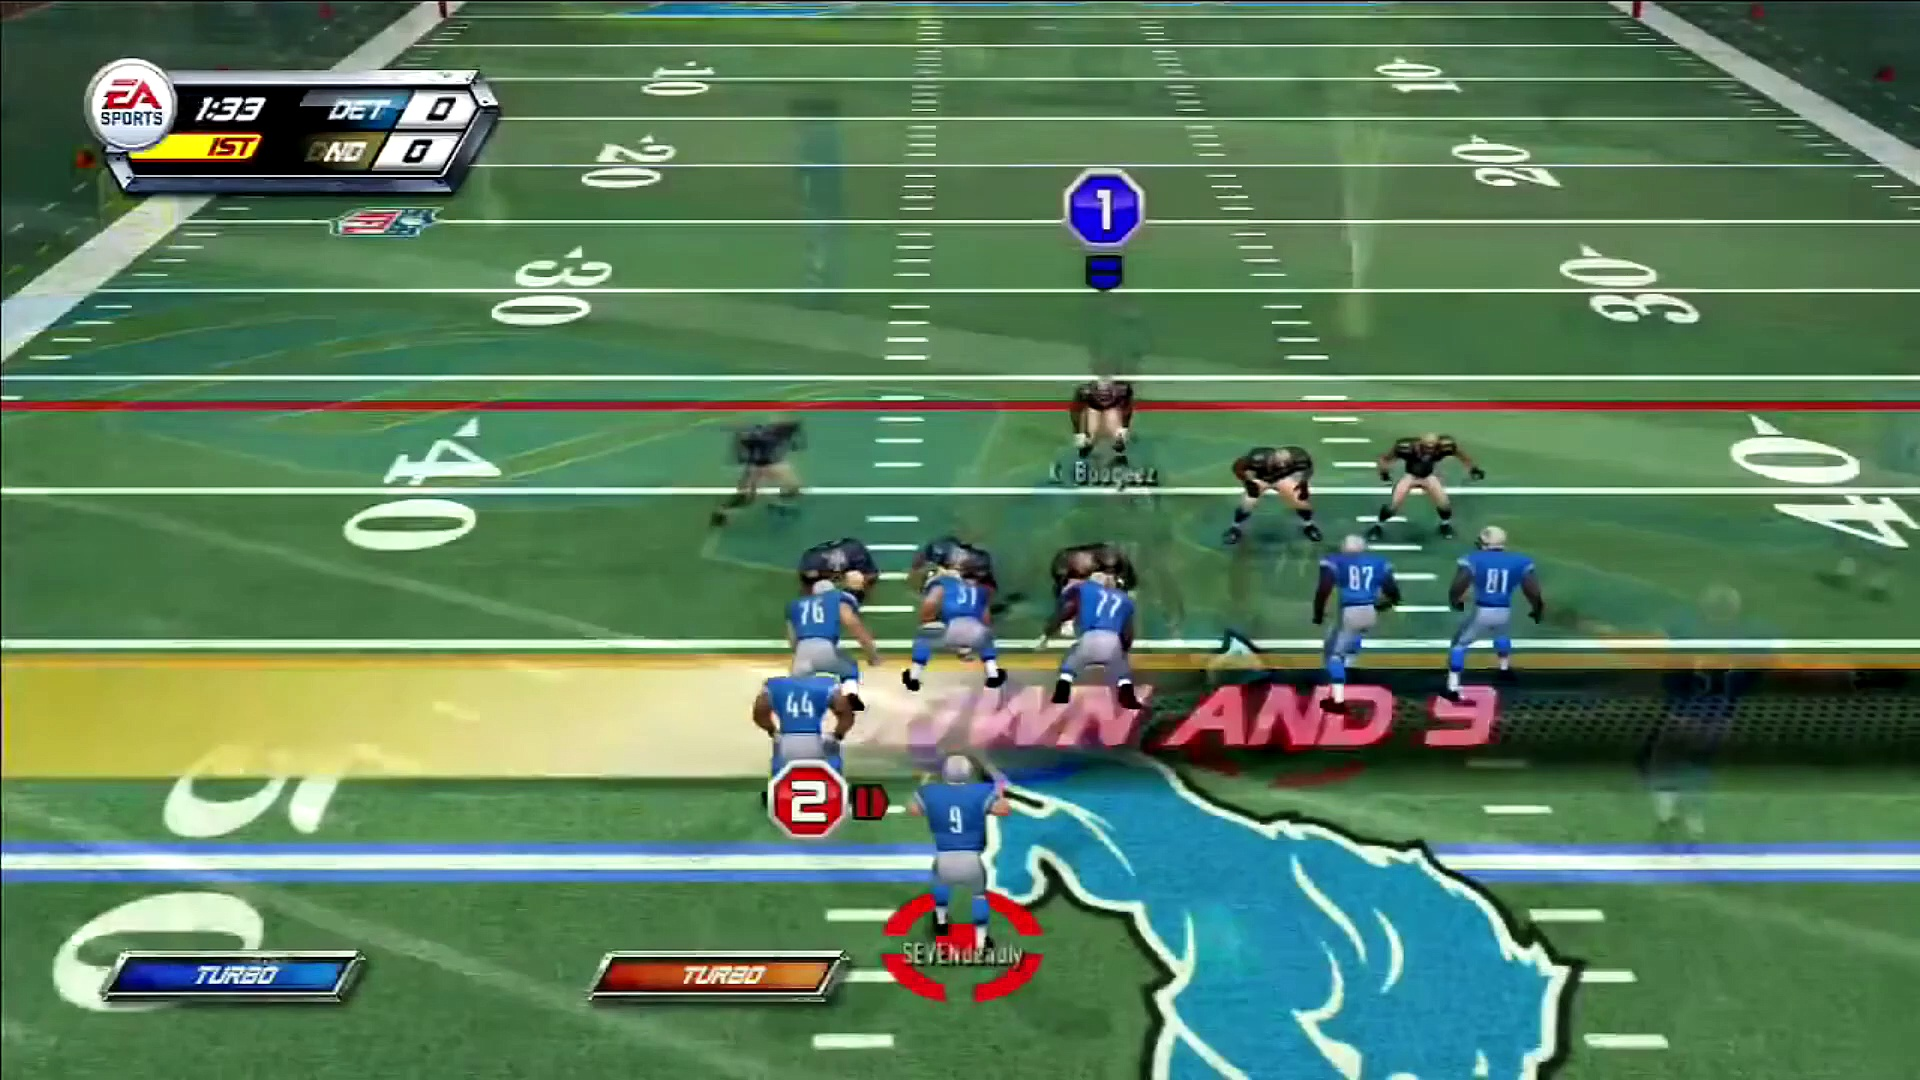 New NFL Football Game Coming!